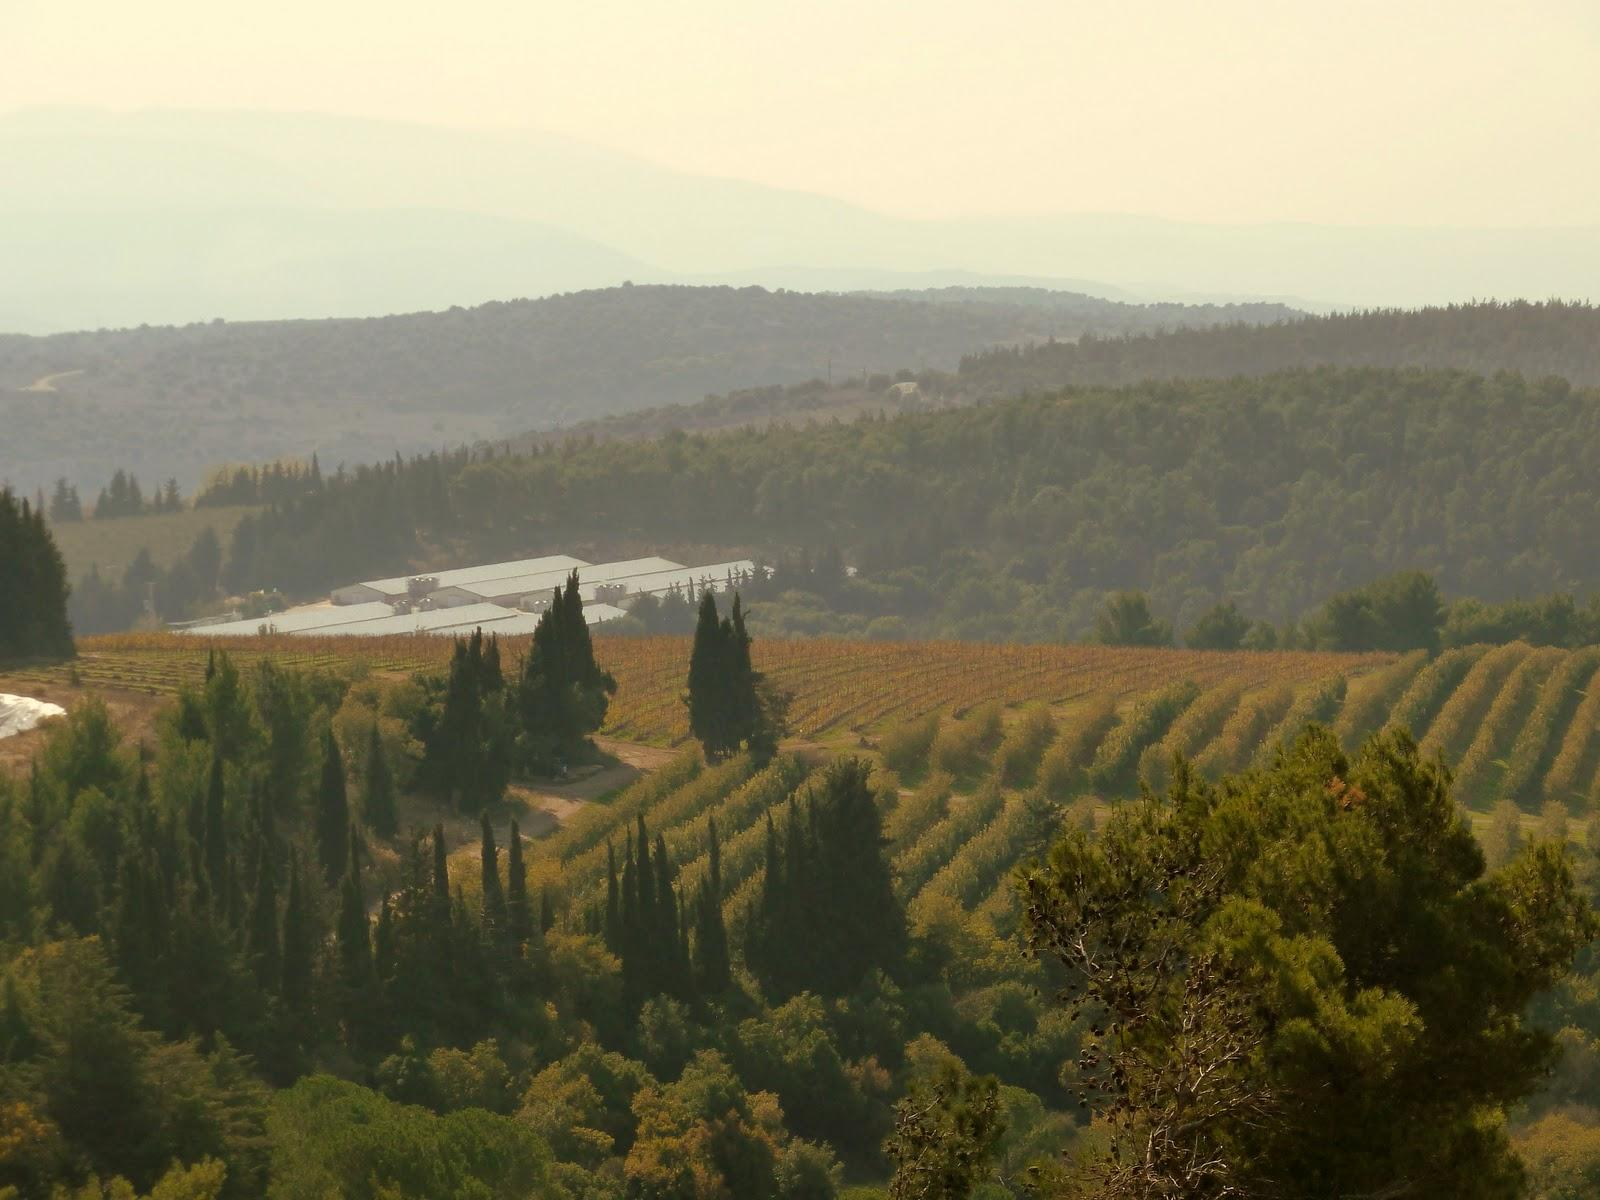 Tuscany in Israel, indeed